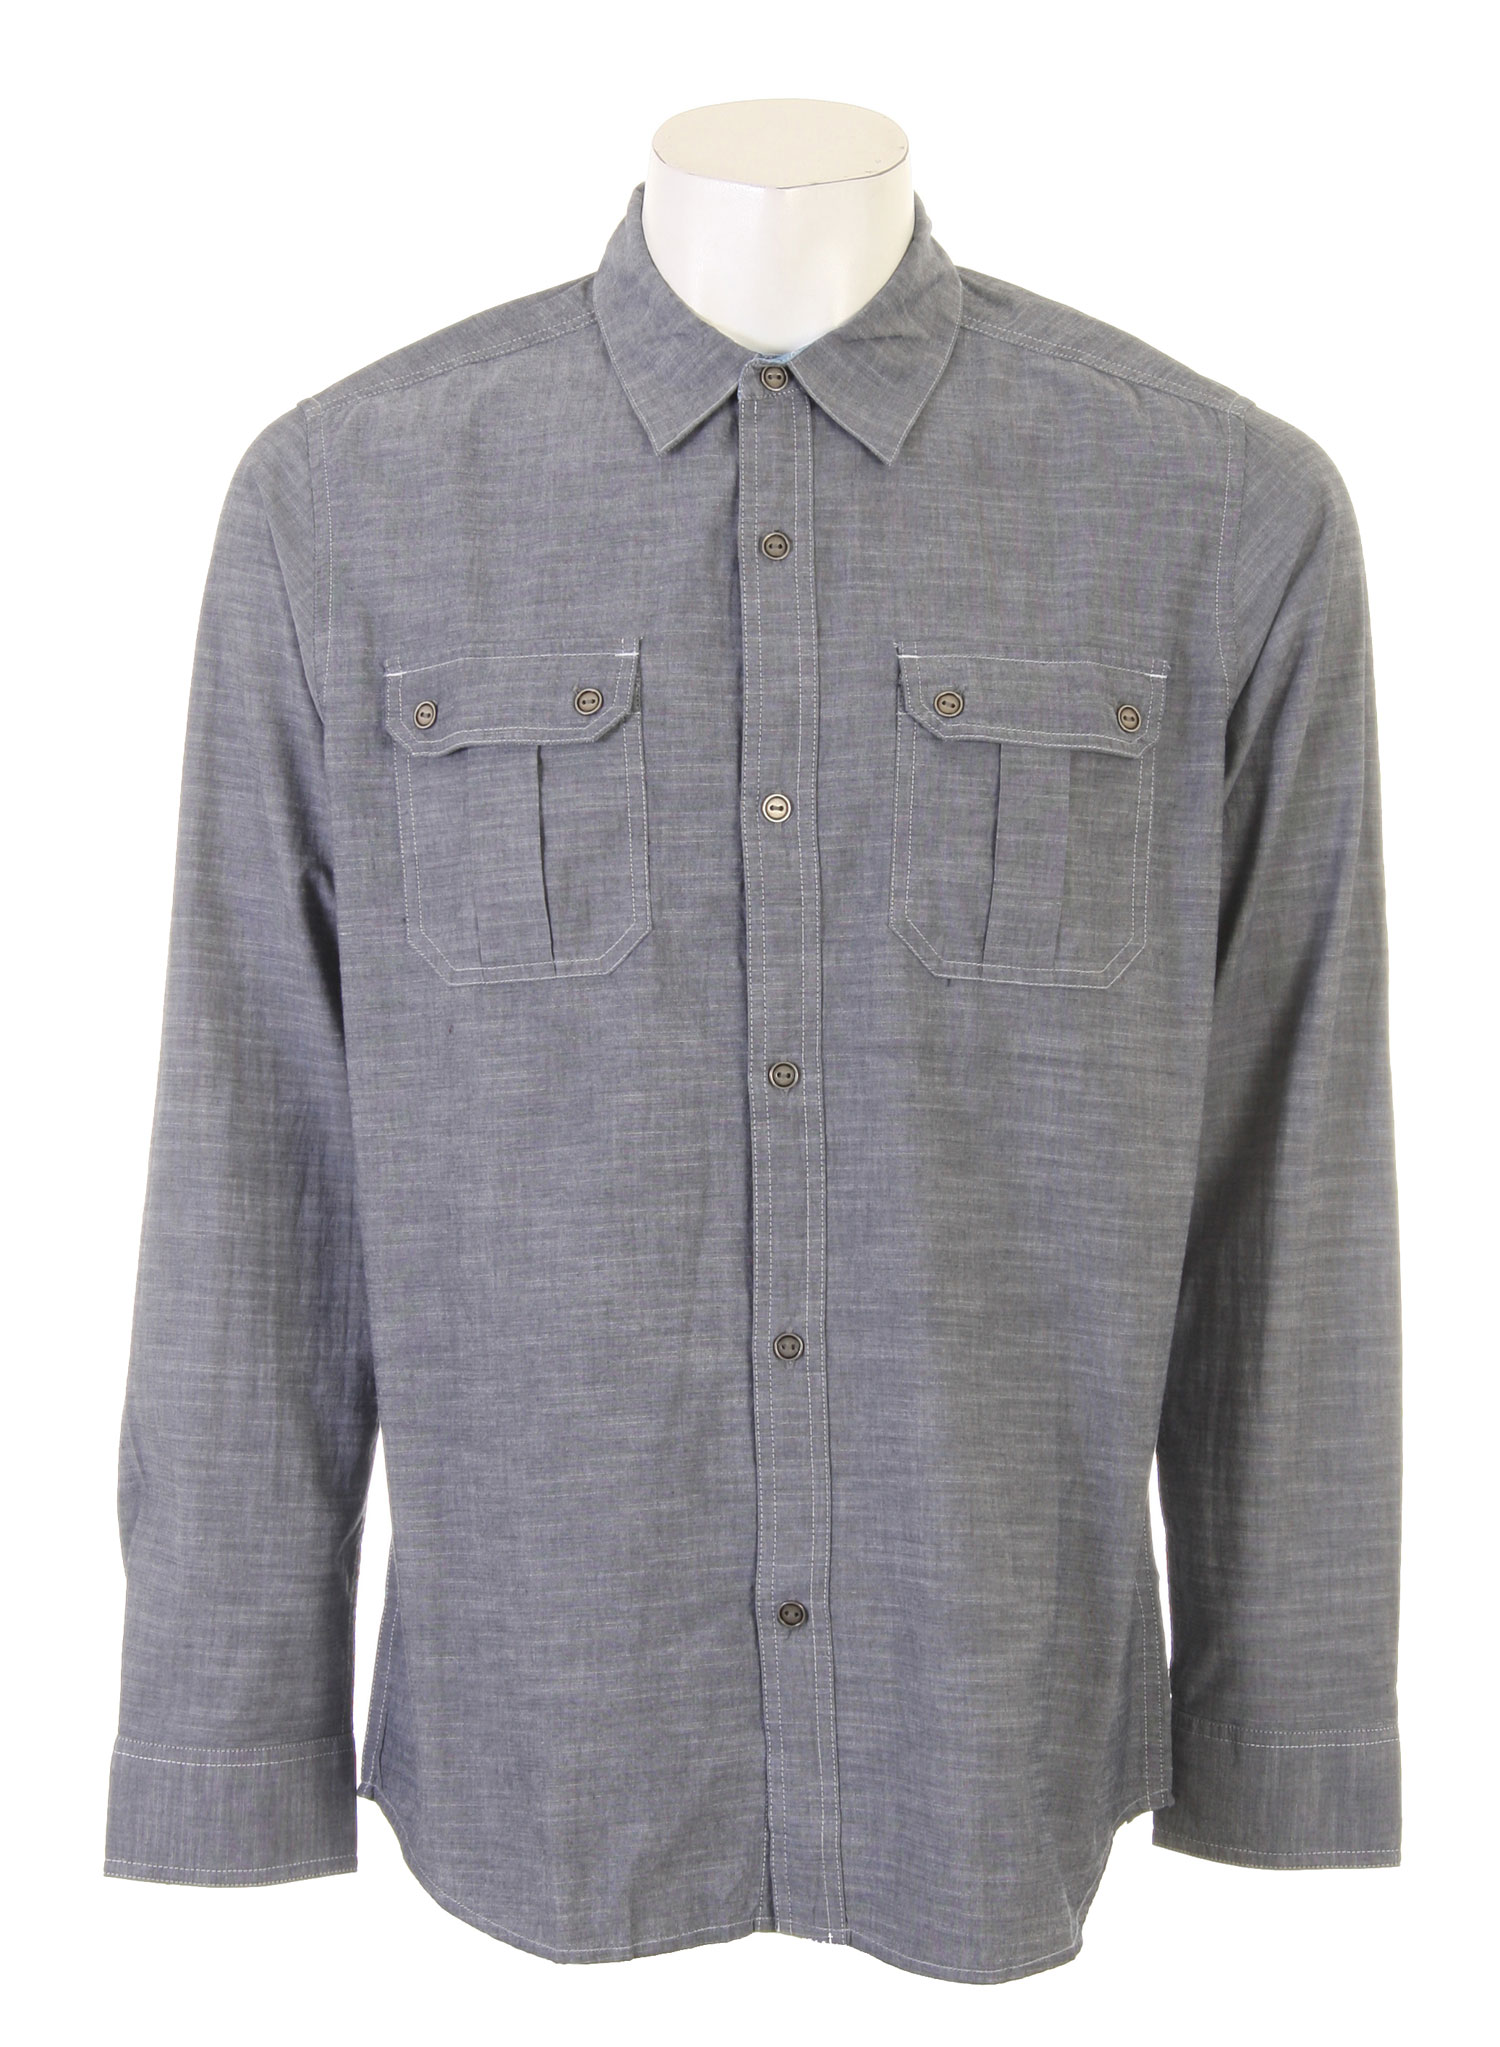 Surf One of the staples of many men's wardrobe is the long sleeved button up shirt. If you are looking for an attractively designed shirt that is classic, but just different enough to stand out from the crowd, then the Tyler Shirt by Quiksilver may be exactly what you are looking for. The shirt is 100% cotton so it will wash easily and look great without too much work. The sleeves have tabs to hold them up if you prefer to wear them rolled up. These features come together to make a shirt that will likely be one of your favorites for years to come.Key Features of the Quiksilver Tyler Shirt: 100% Cotton Long sleeve solid crossfire texture work-wear woven with double pockets Logo embroidery Roll-up sleeve tabs Ice wash - $40.95